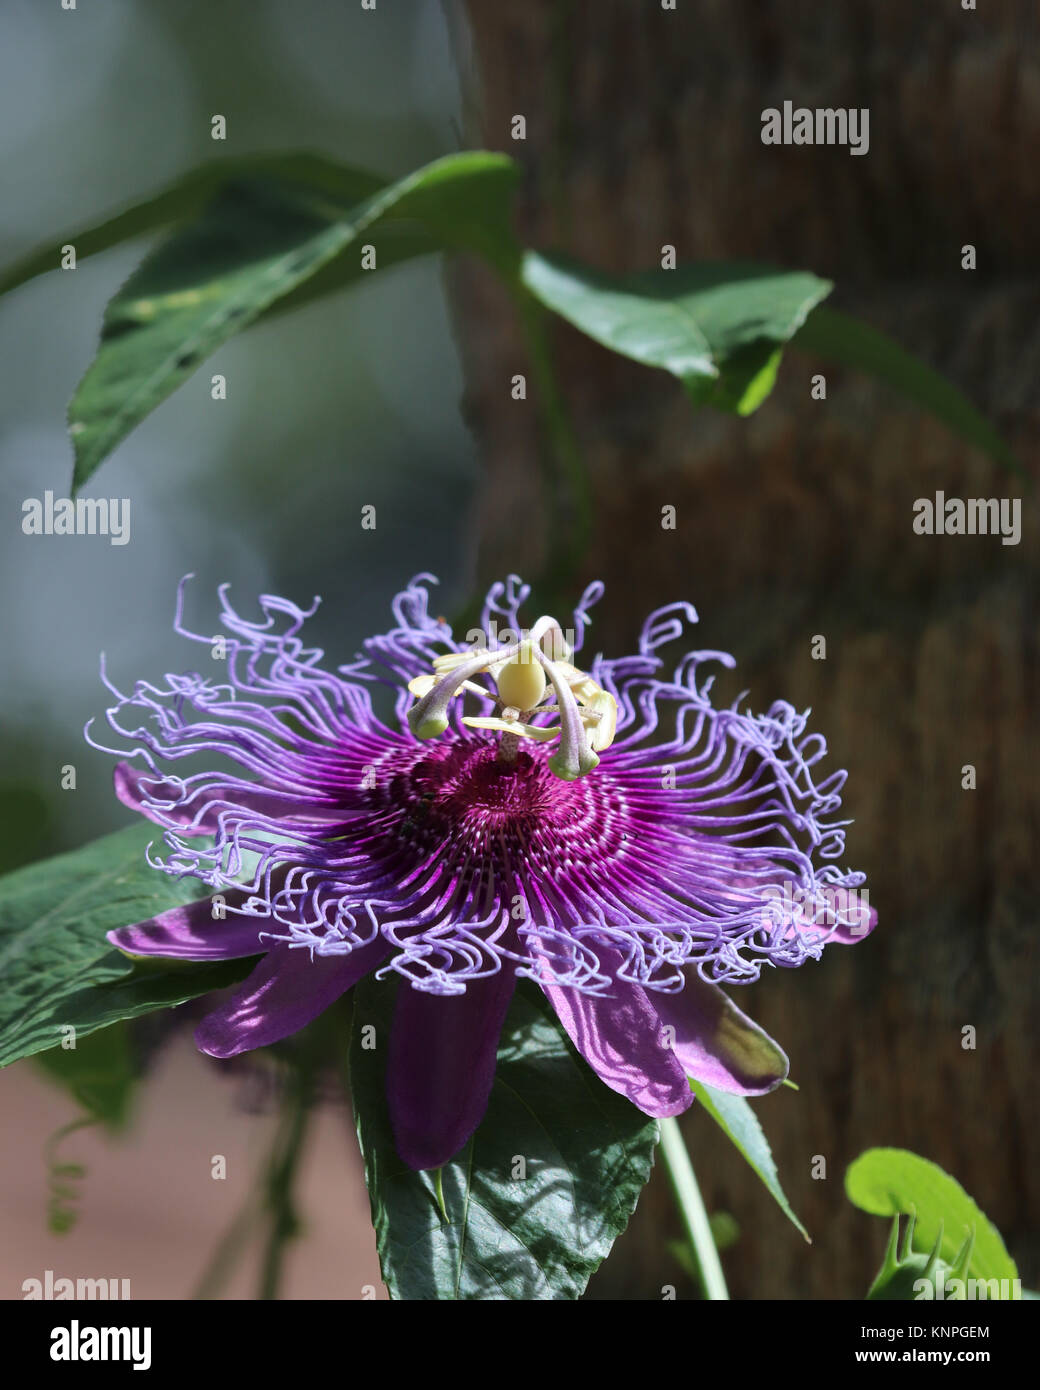 The Unique Looking Purple Passionflower Plant Is A Fast Growing